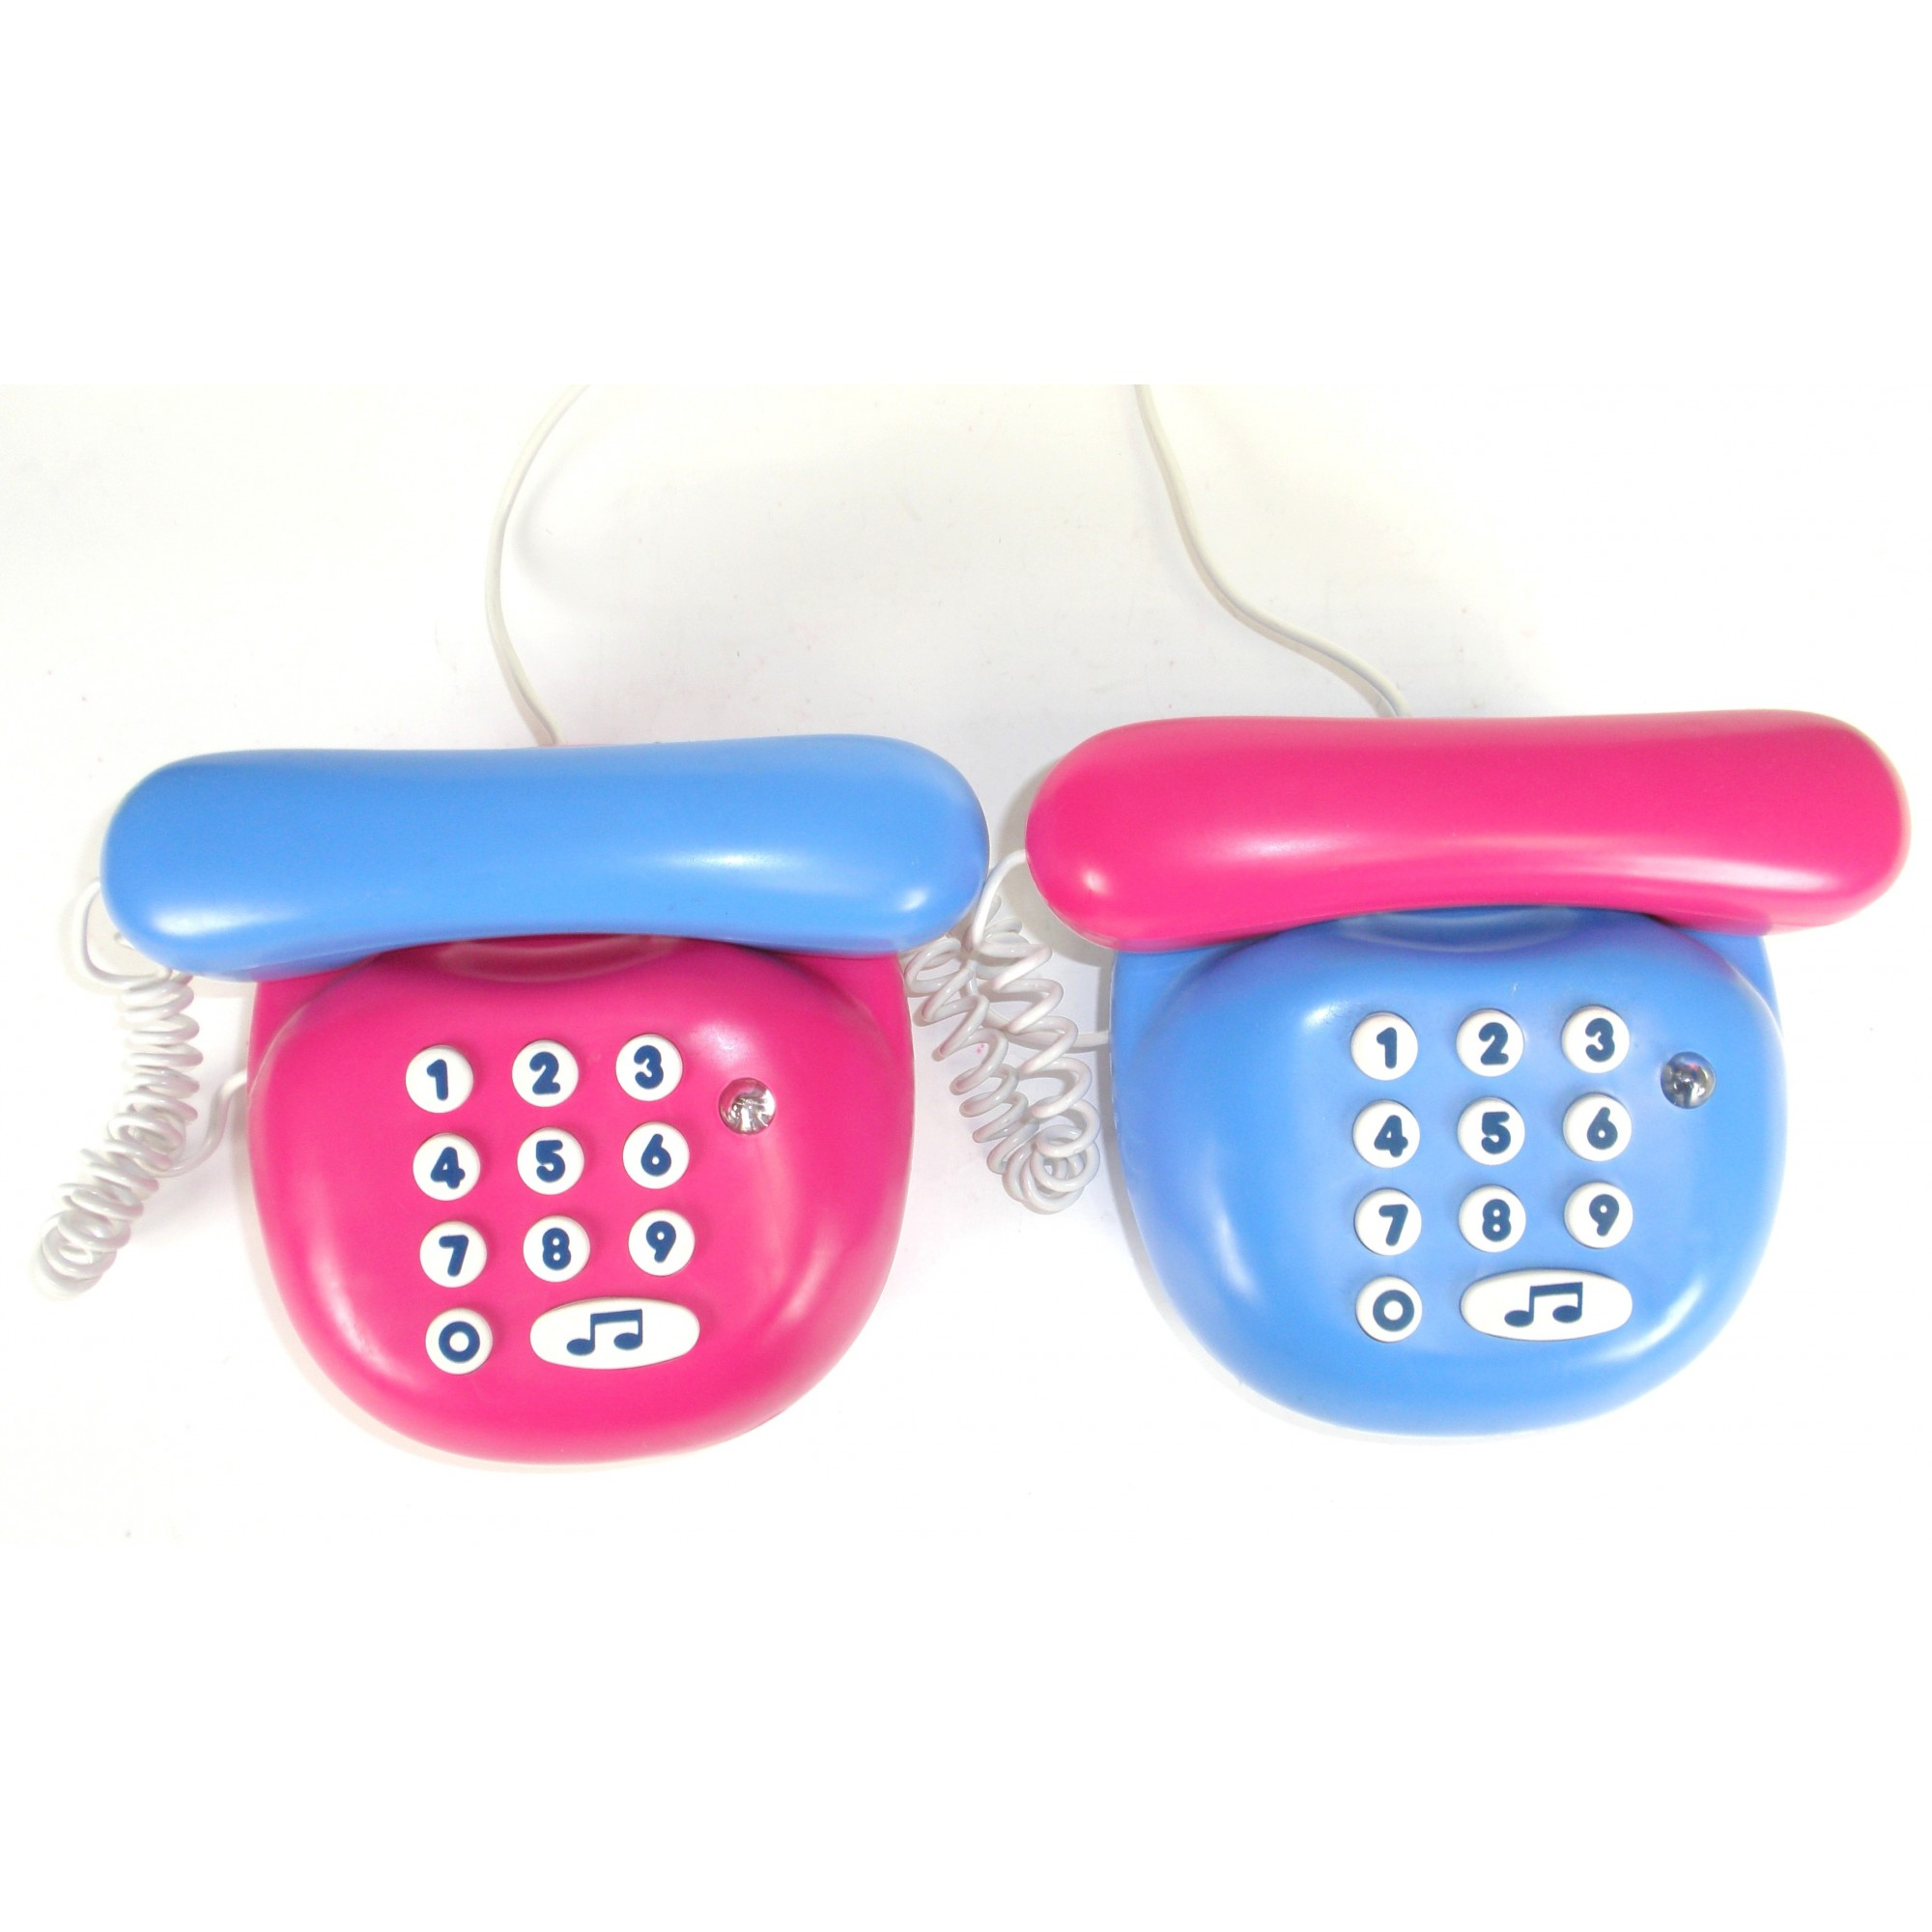 Intercom Phone Set